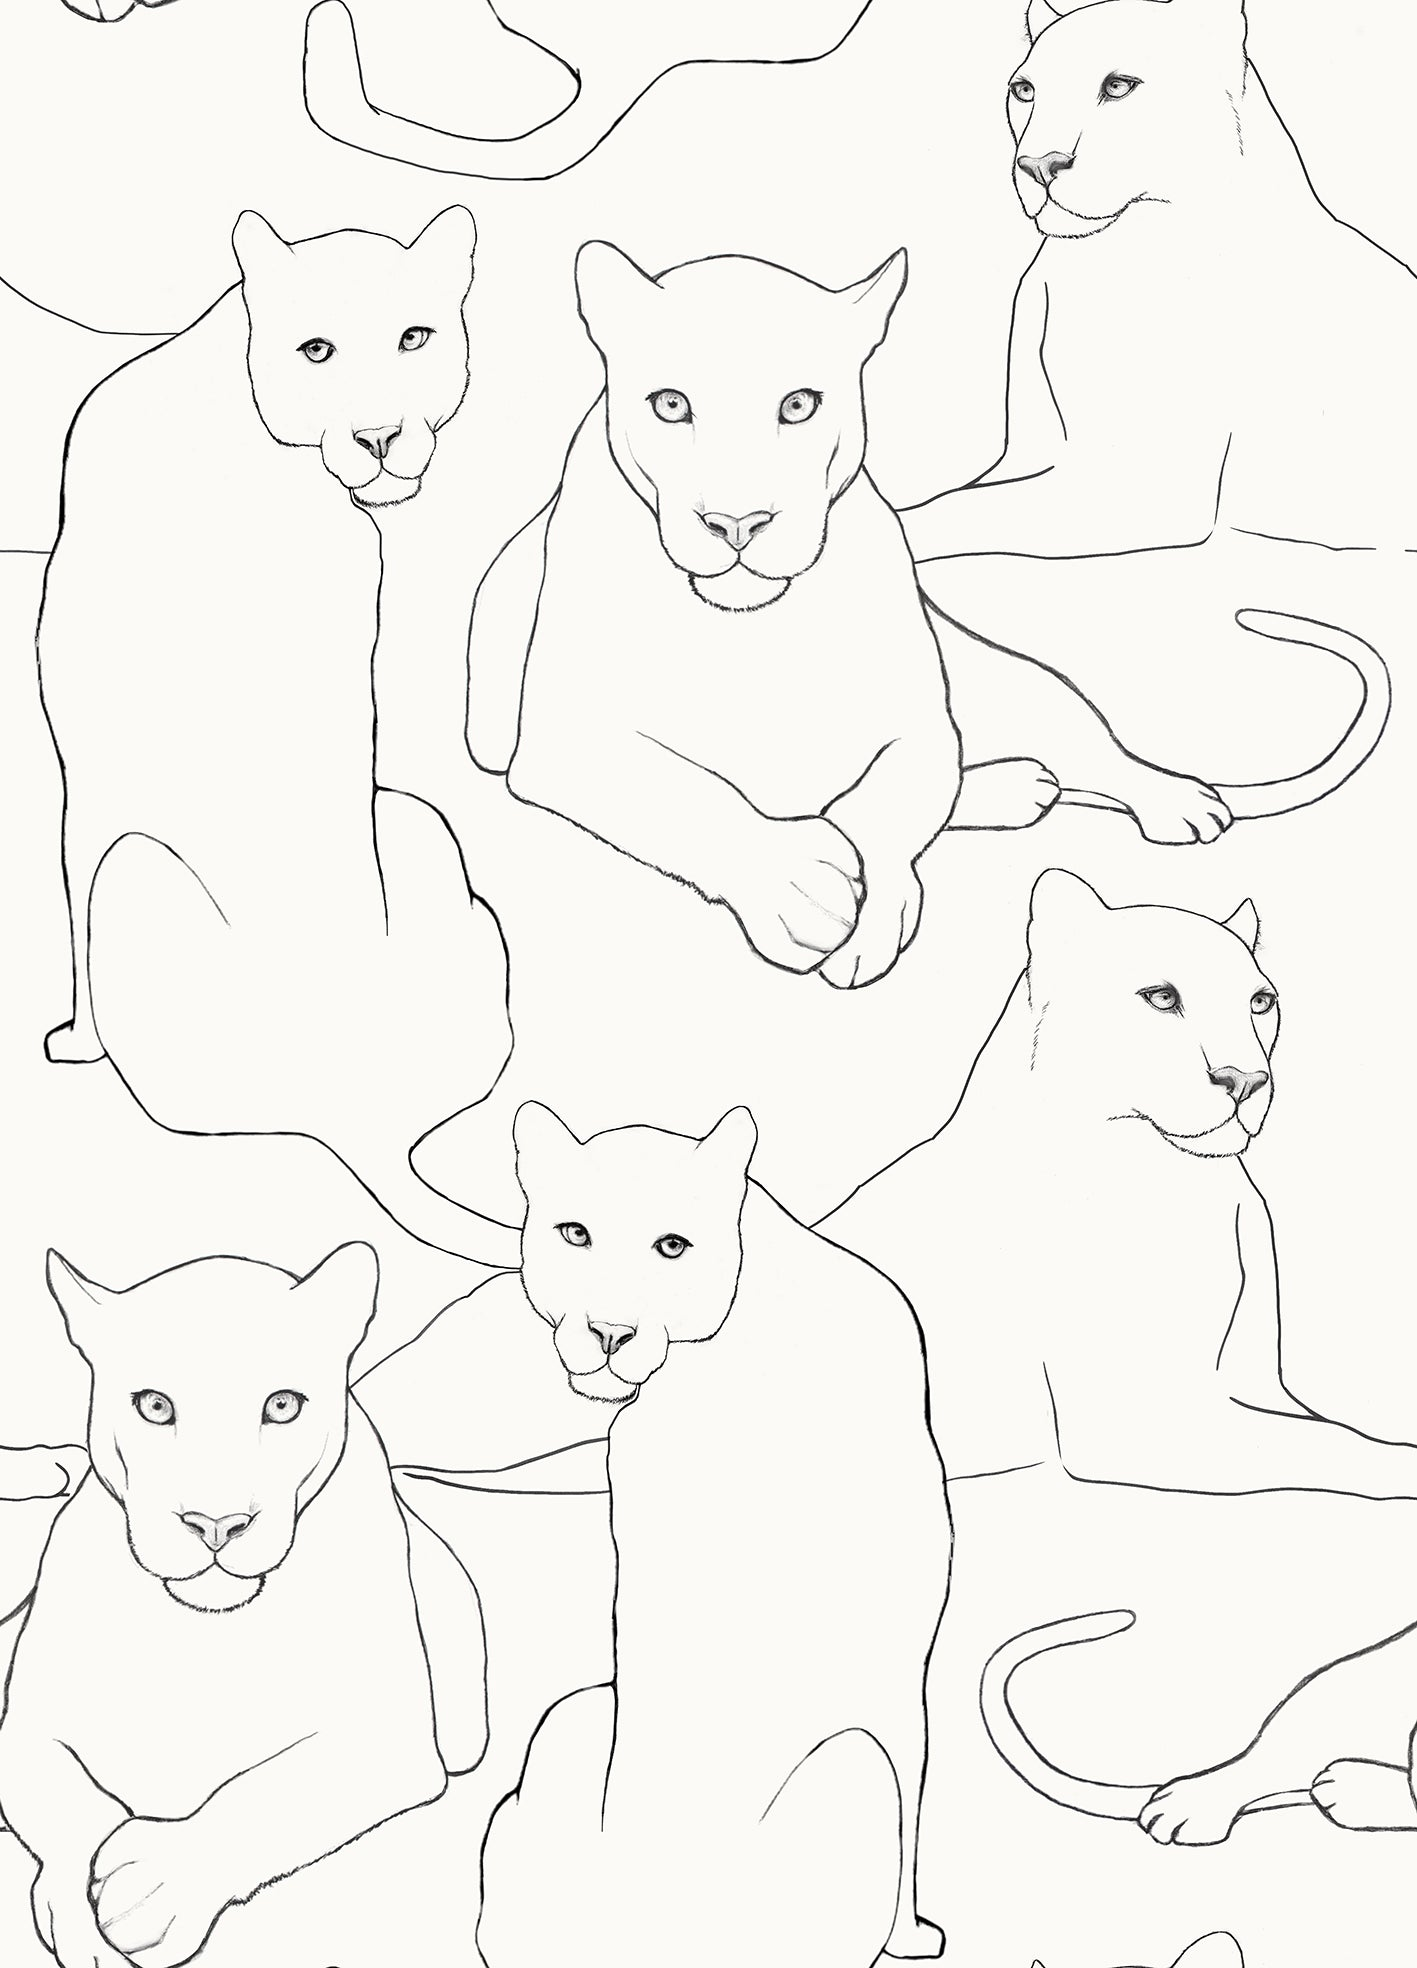 Big cats Wallpaper Sample - Ivory